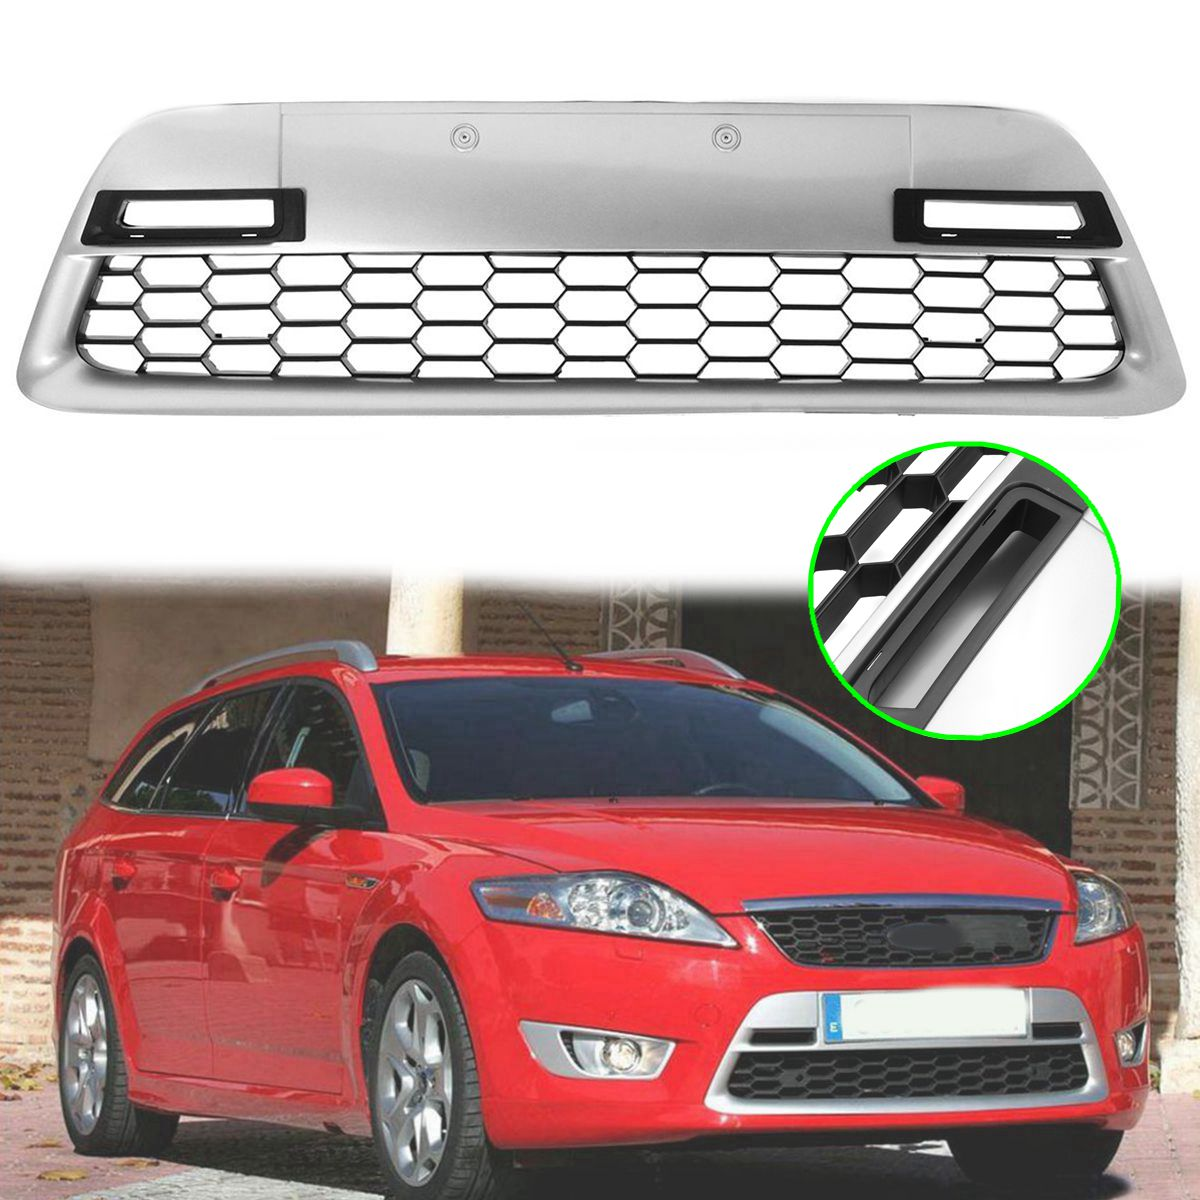 105cm Auto Radiator Centre Bumper Grille Panel Cover Car Grill Panel Trim for FORD Mondeo MK4 2007-2010 front radiator centre grille panel for ford for focus mk3 st line radiator grill bumper honeycomb mesh cover moulding part